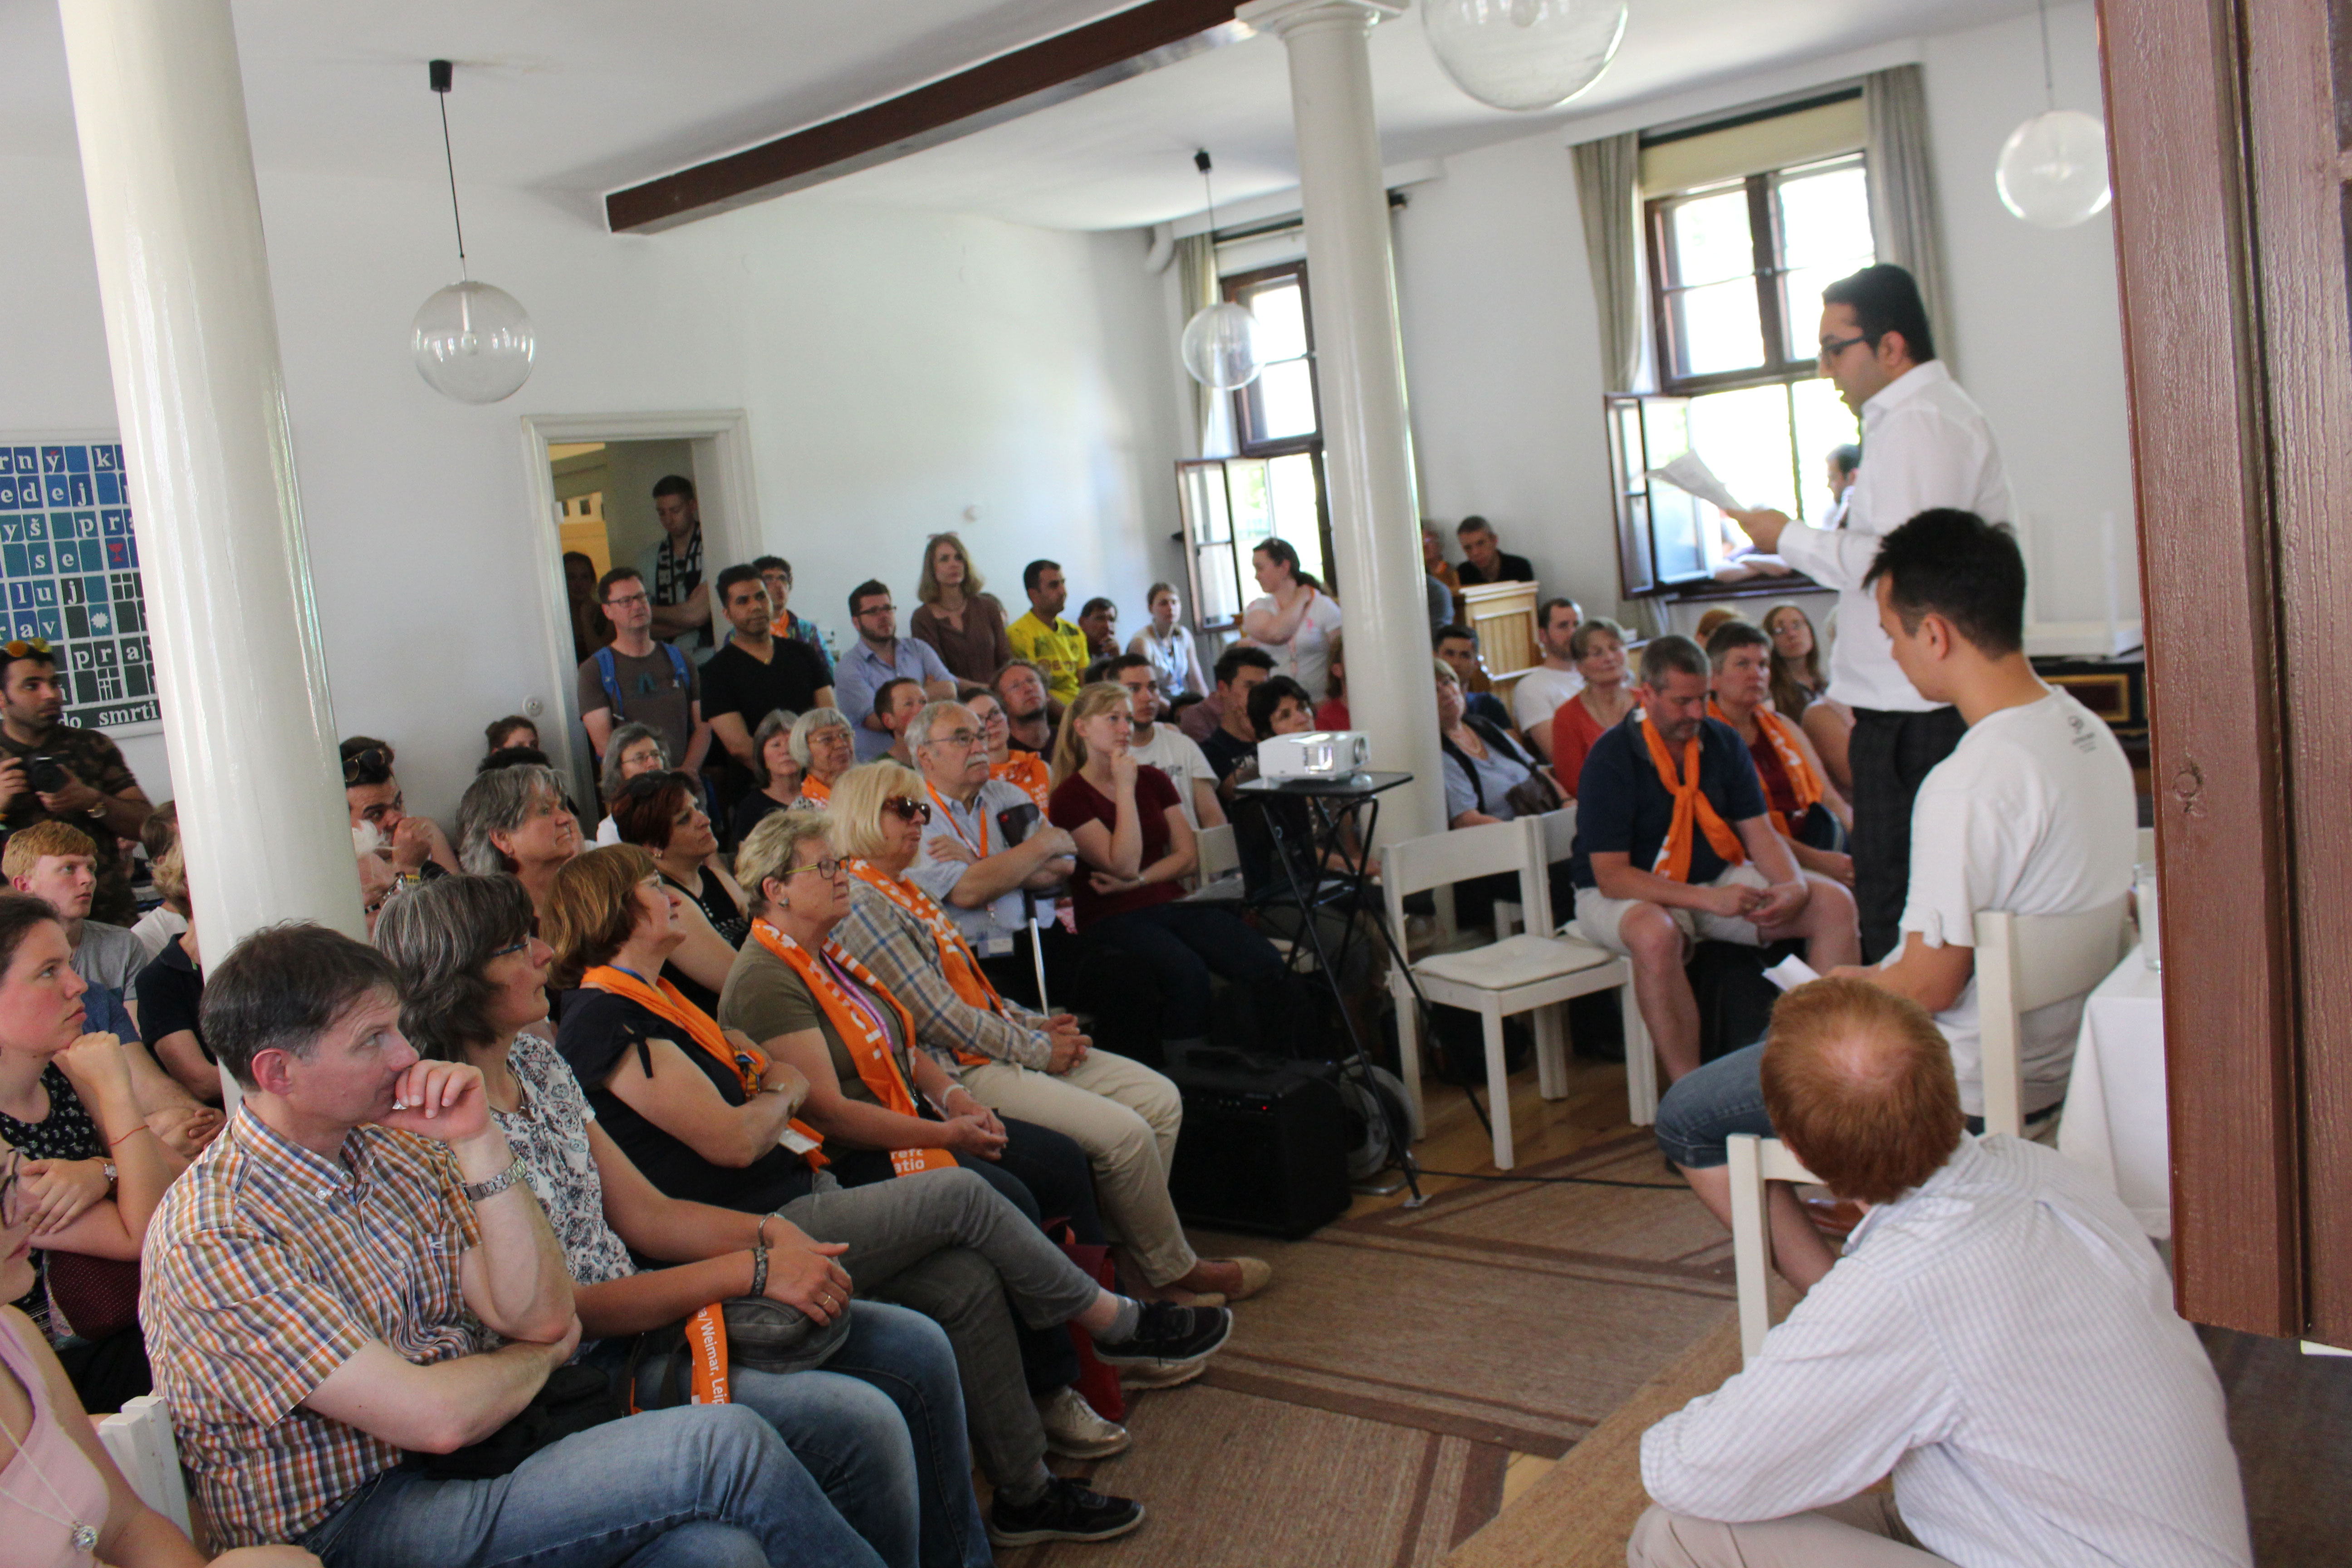 Ryan (seated) looks on as stories are shared with the Kirchentag group